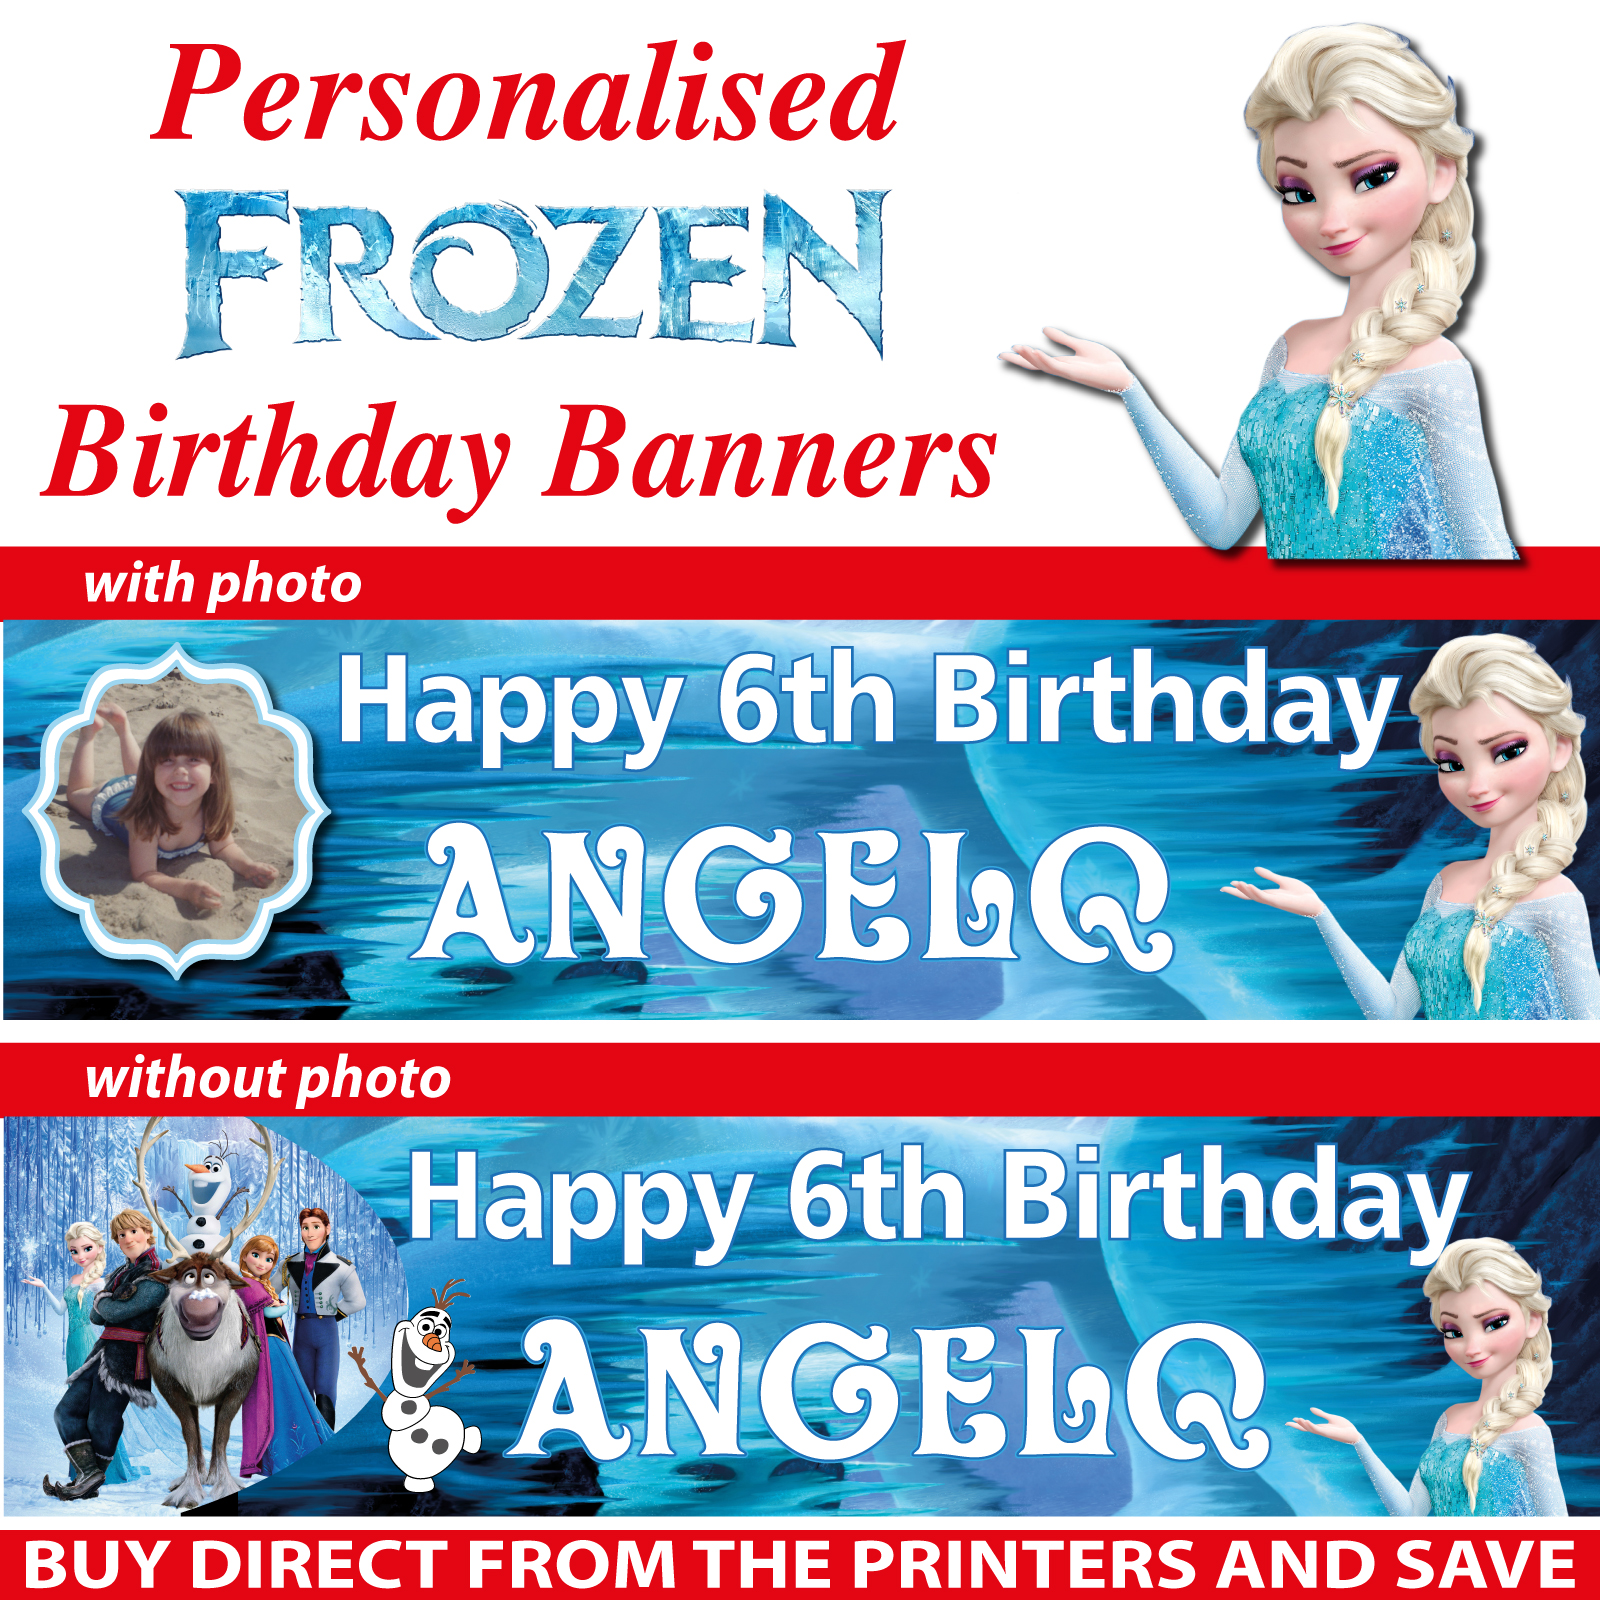 Personalised Frozen Party Birthday Banners